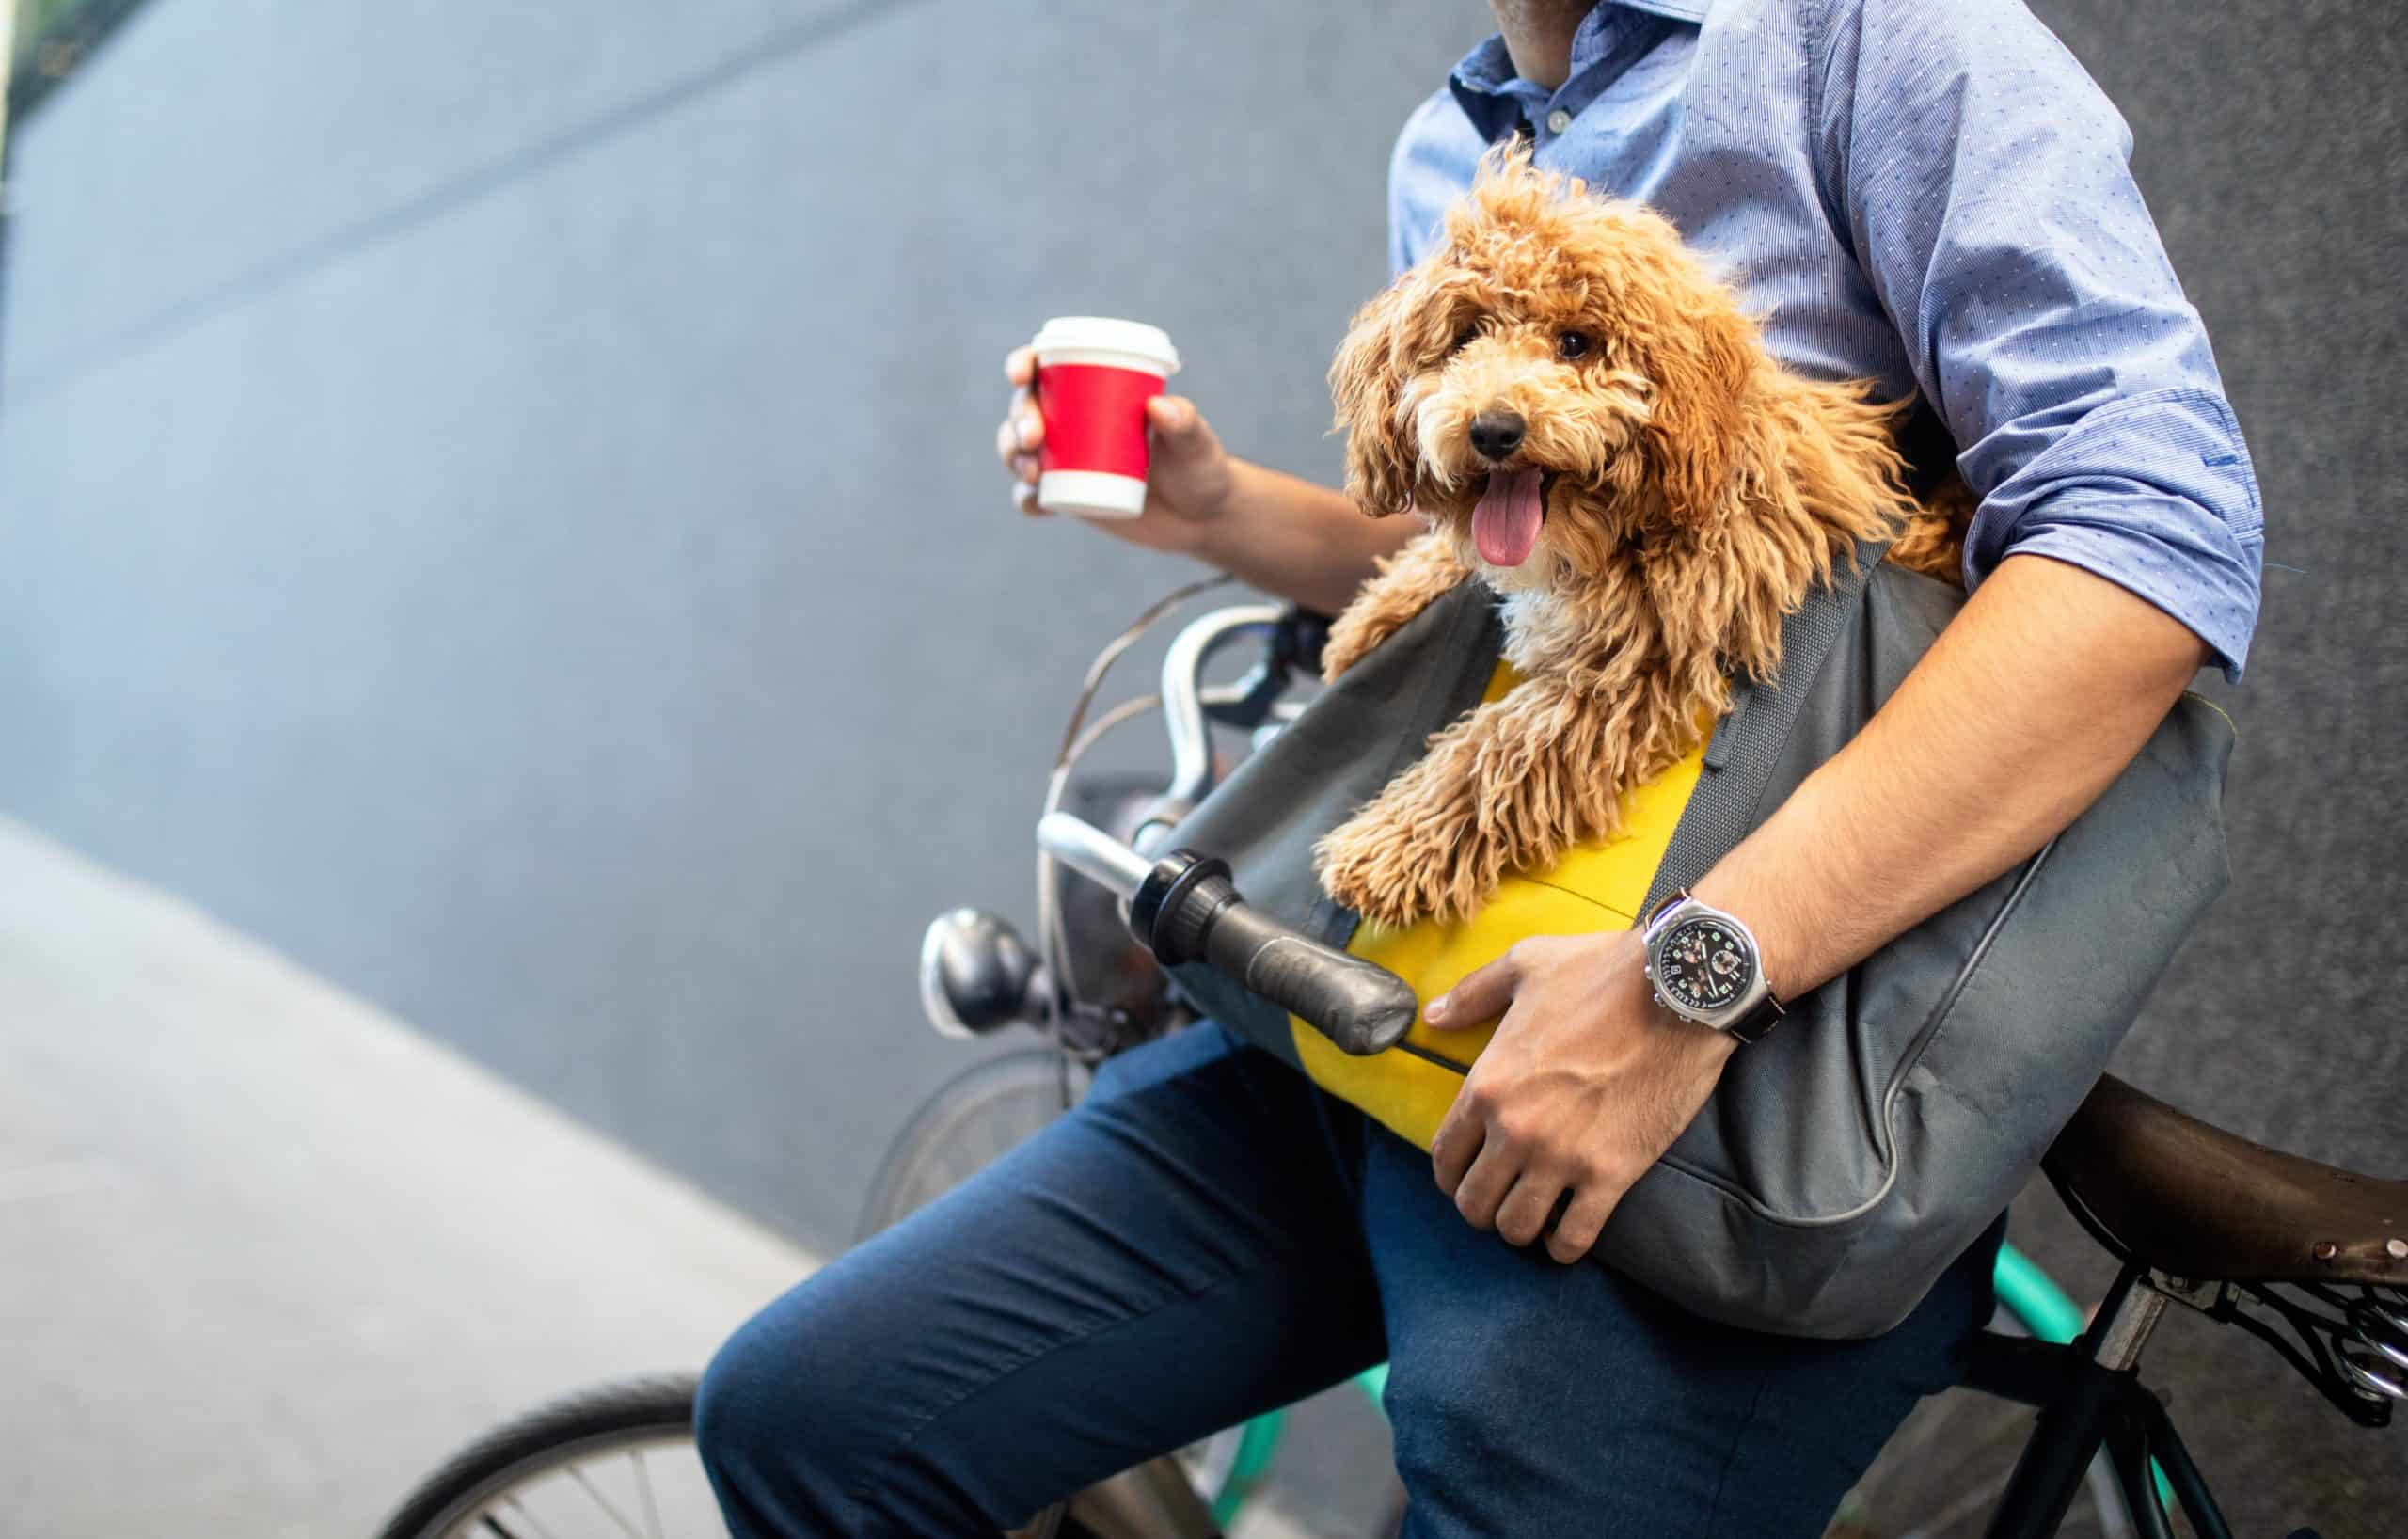 Student carries golden doodle puppy in messenger bag. Dogs make great companions for students and help ease loneliness.